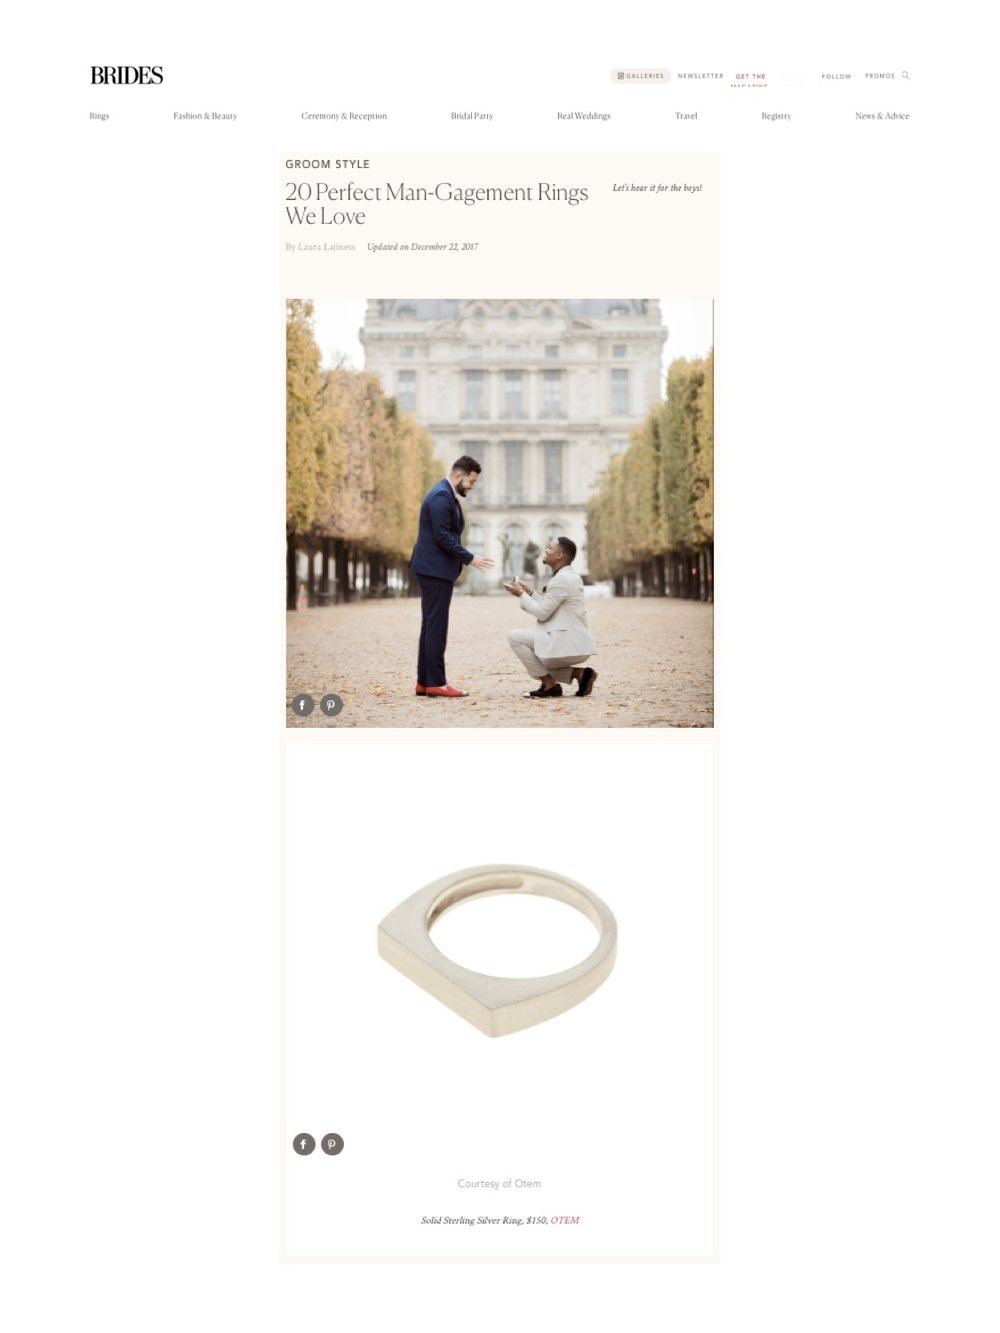 """Man-Gagement """"Sterling Silver ring"""" featured on Brides magazine."""